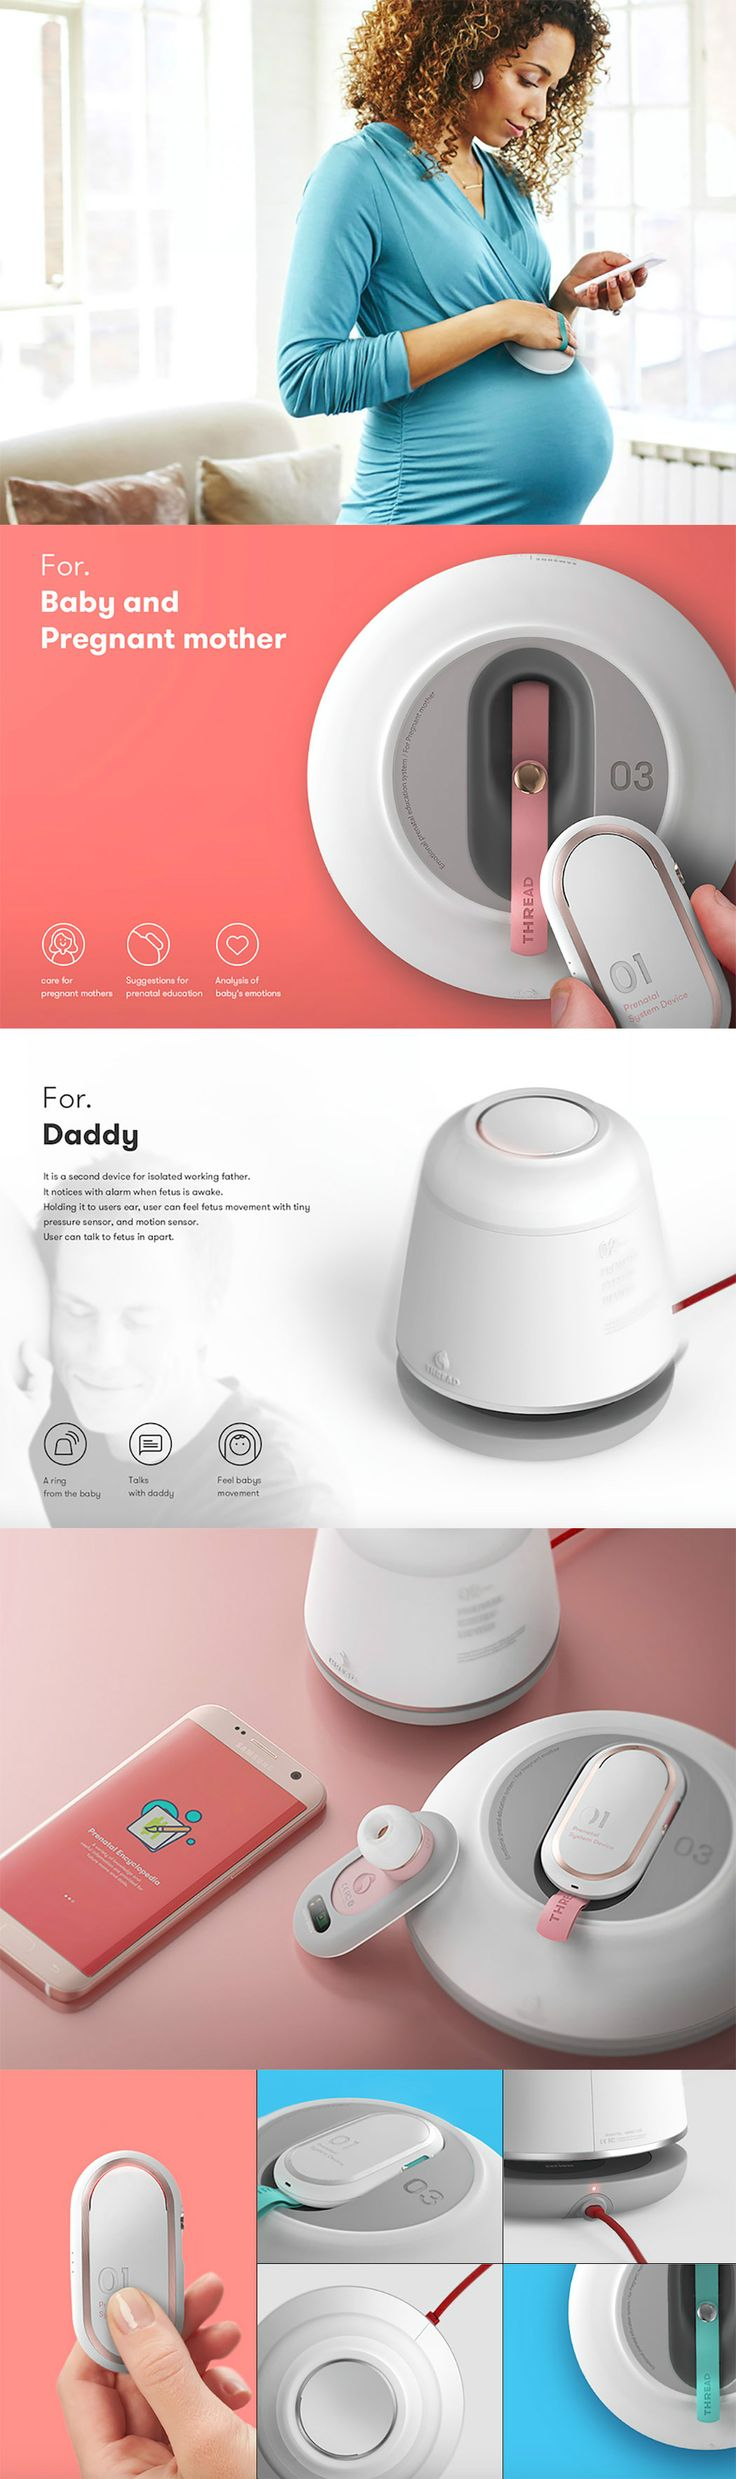 Being pregnant can be overwhelming and even scary… but knowledge is power when it comes to taking care of baby! That's the idea behind Thread, a smart system of devices that aim to connect and educate parents in the prenatal stages.Read Full Story at Yanko Design